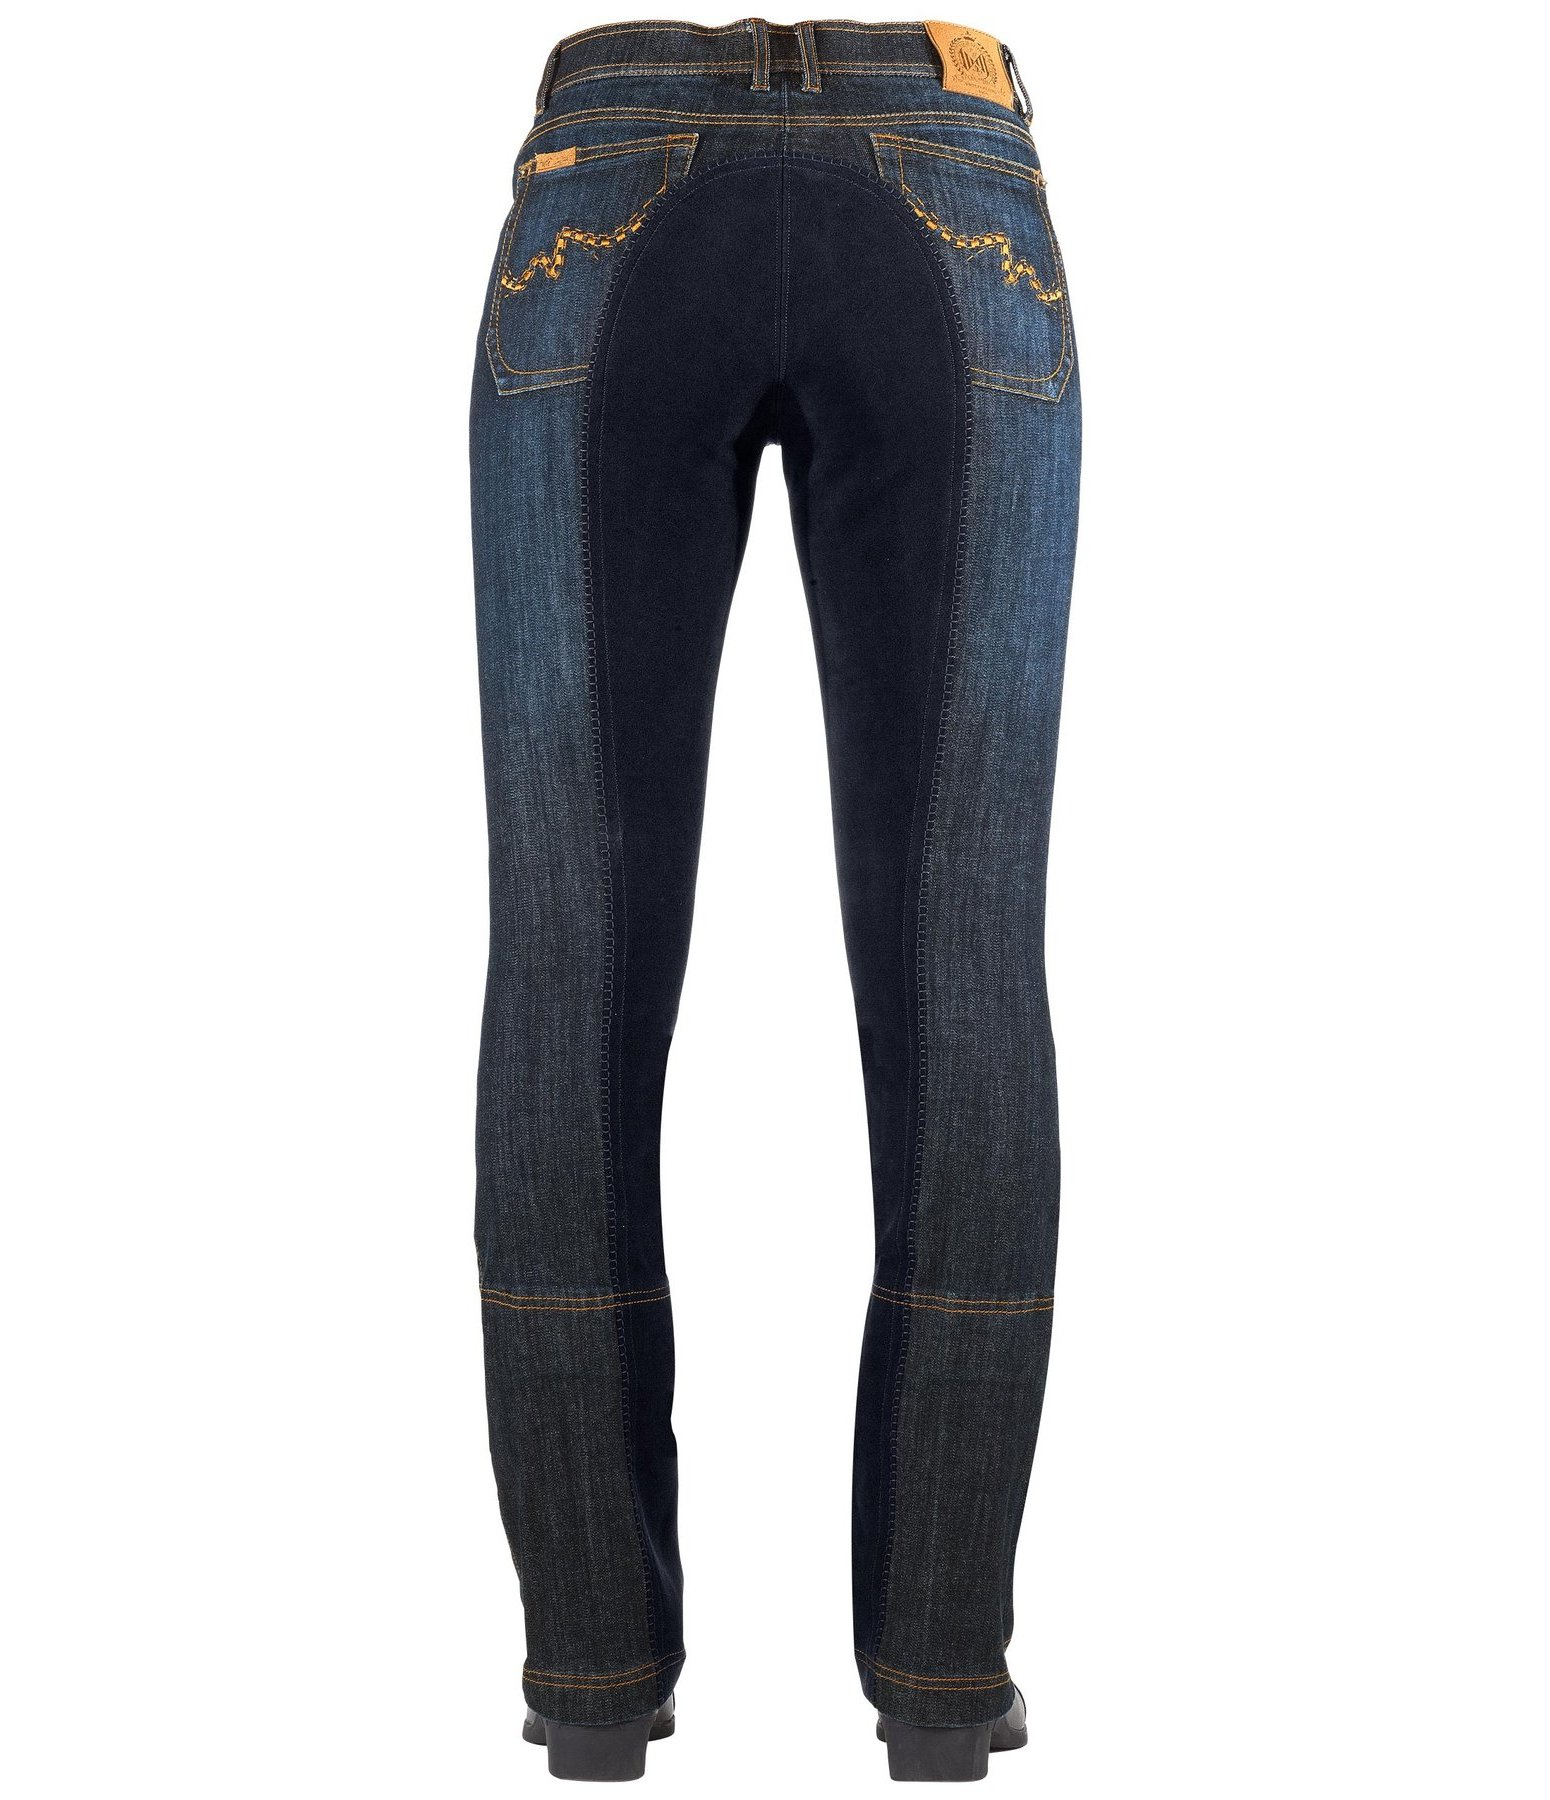 Full-Seat Denim Jodhpurs Helena